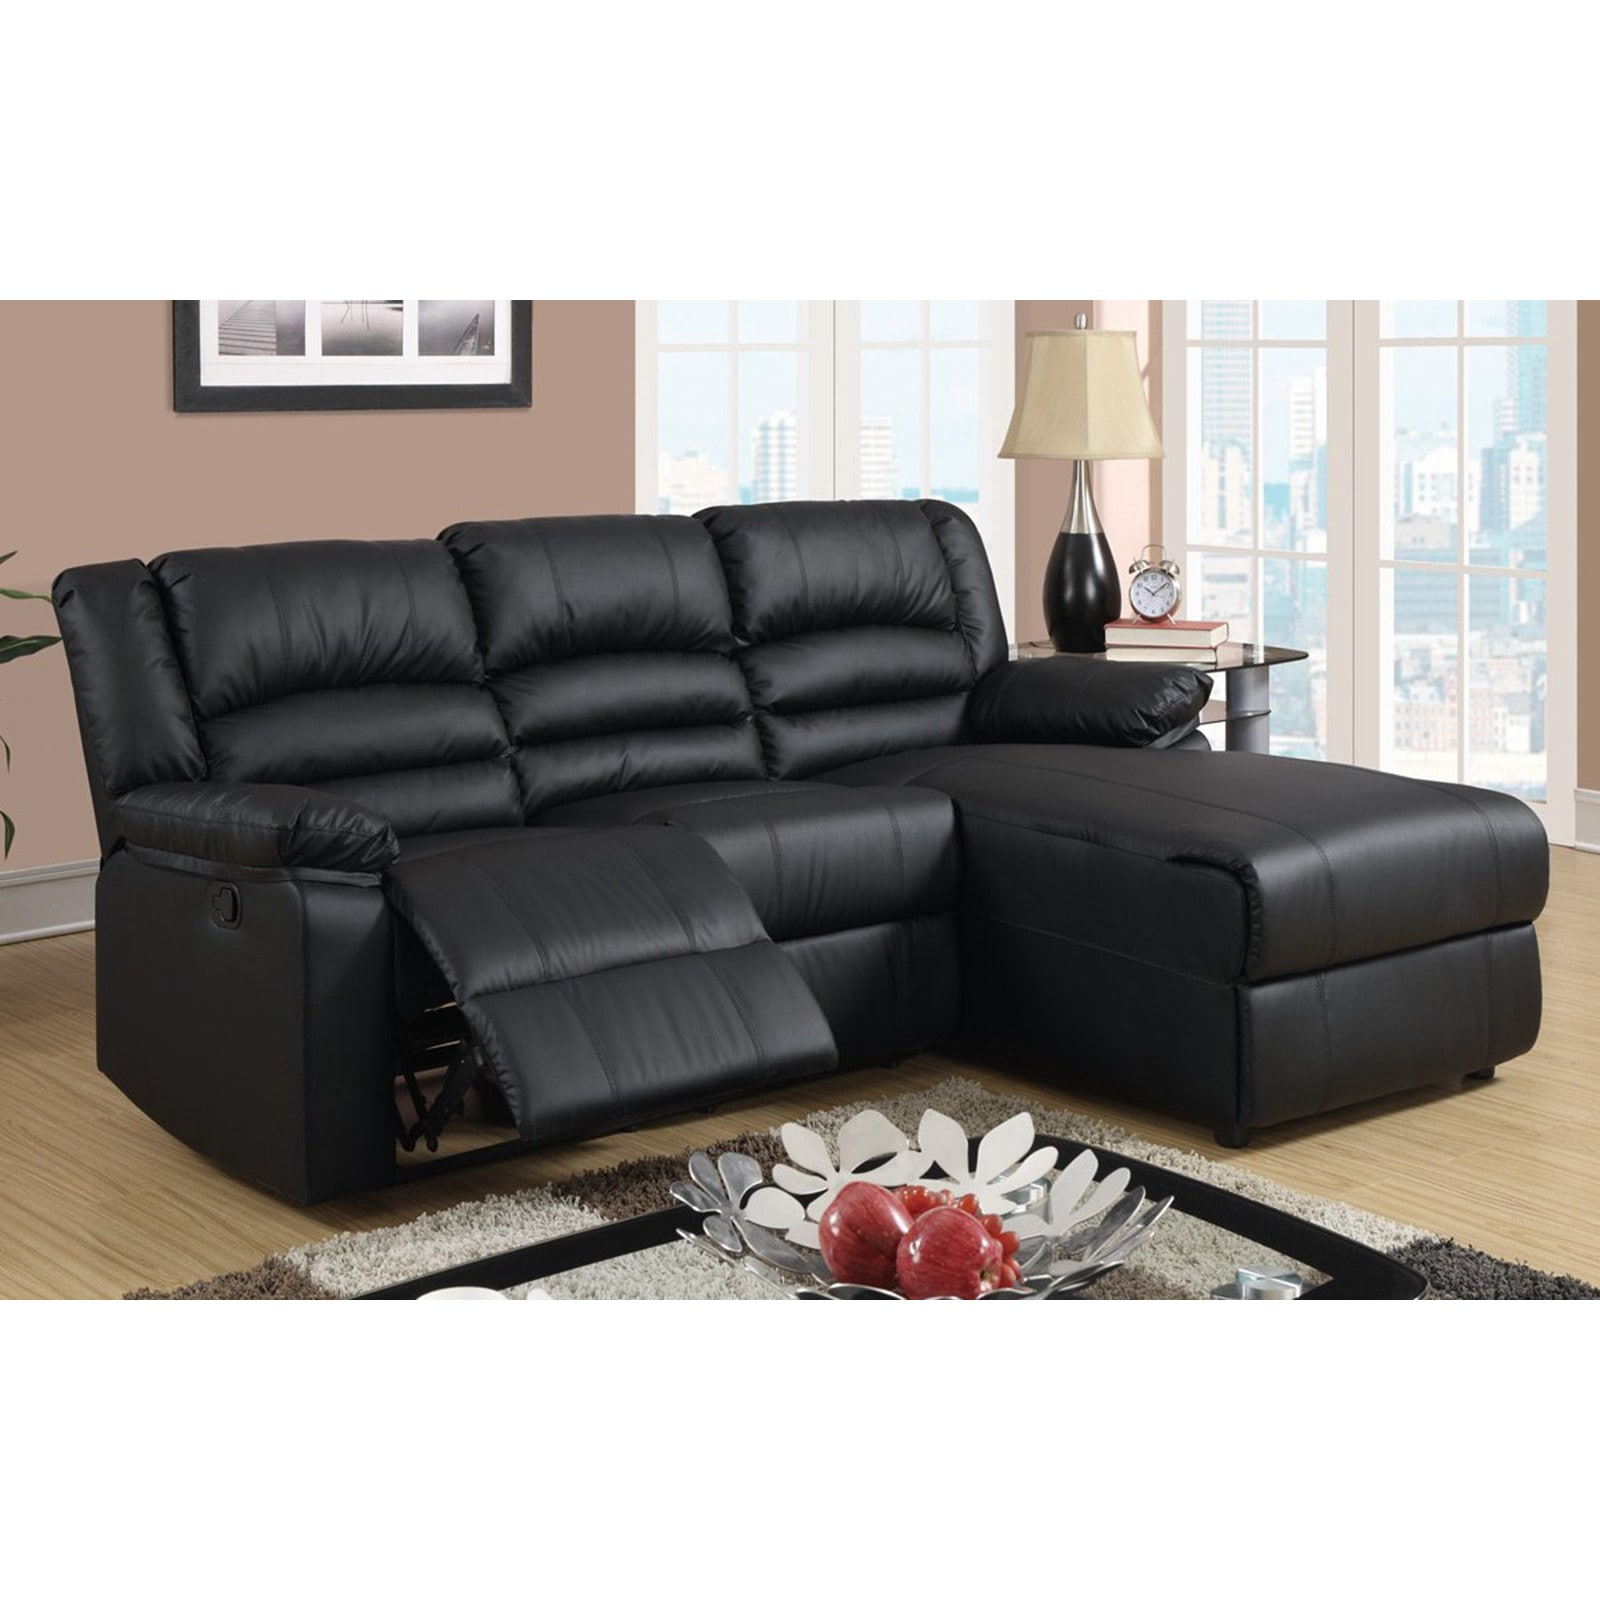 Leather Sectional Sofa Recliner Modern Bonded Leather Small Space Sectional Reclining Sofa With Chaise